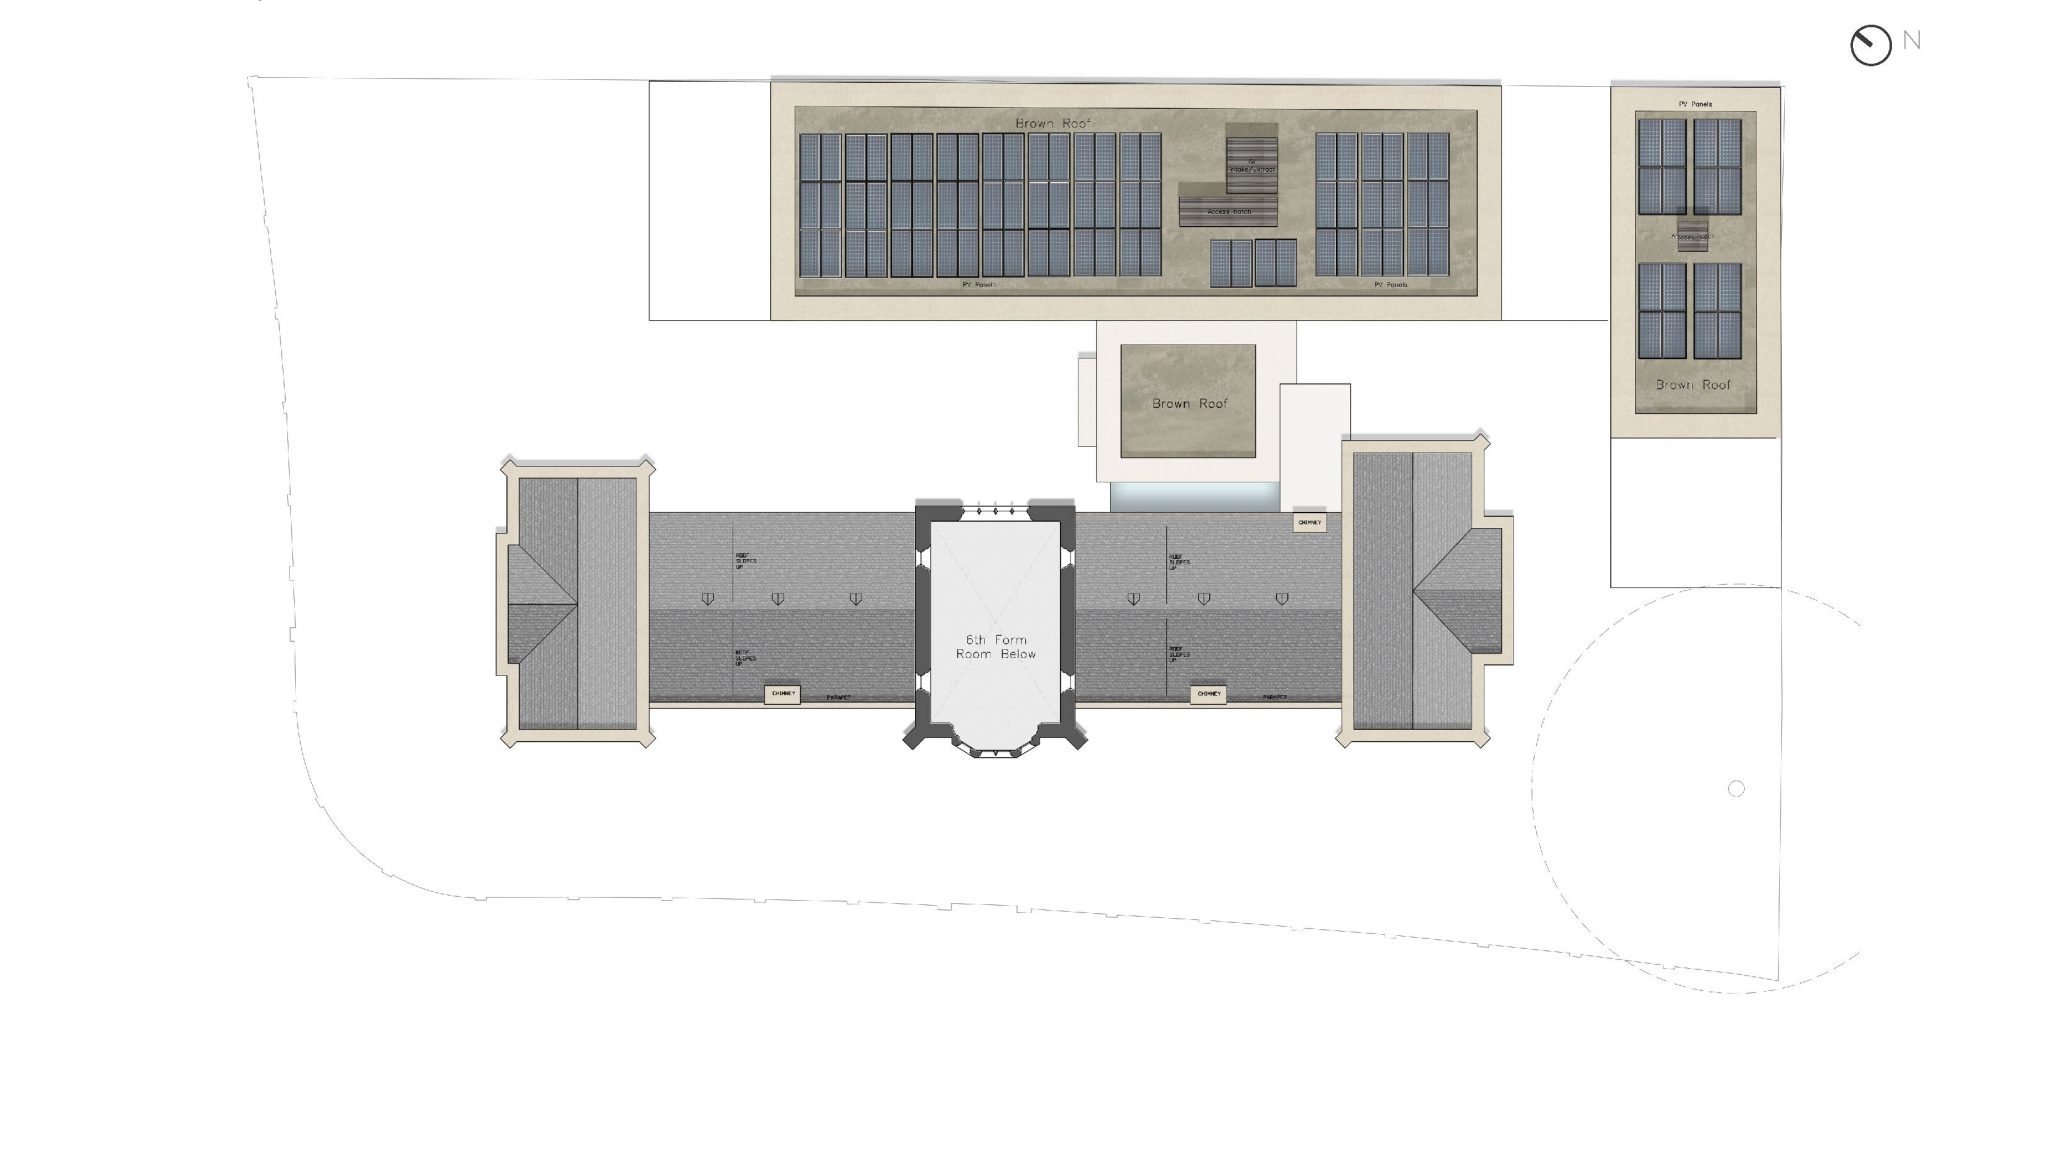 Plan, Second Floor - The Castle Club School, Fulham, London SW6